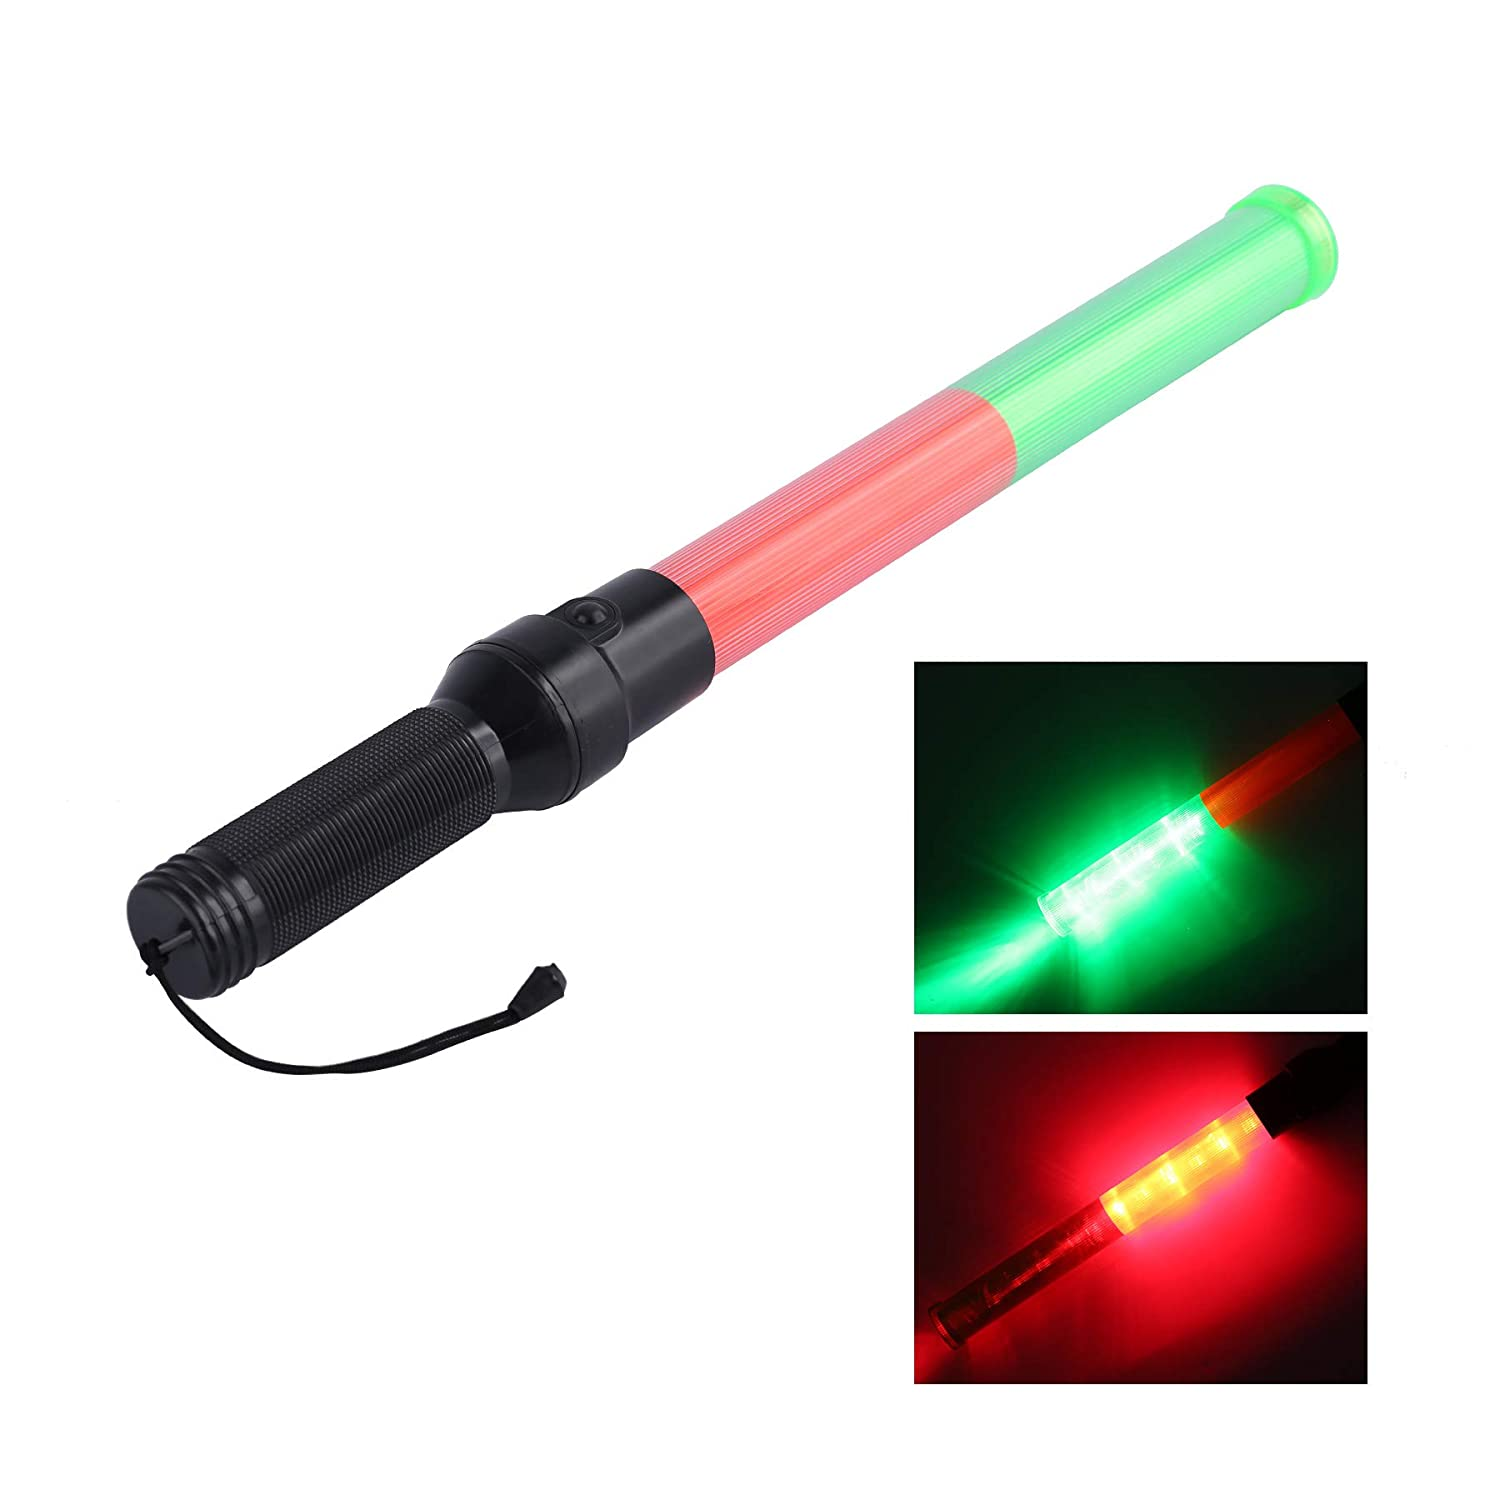 21inch Signal Traffic Safety Wand Baton Led Light with 3 Discoloration Flashing Modes,Signal Indicator Stick for Traffic Control Parking Guide, Using 2 D-Size Batteries Not Includ(Red&Green)